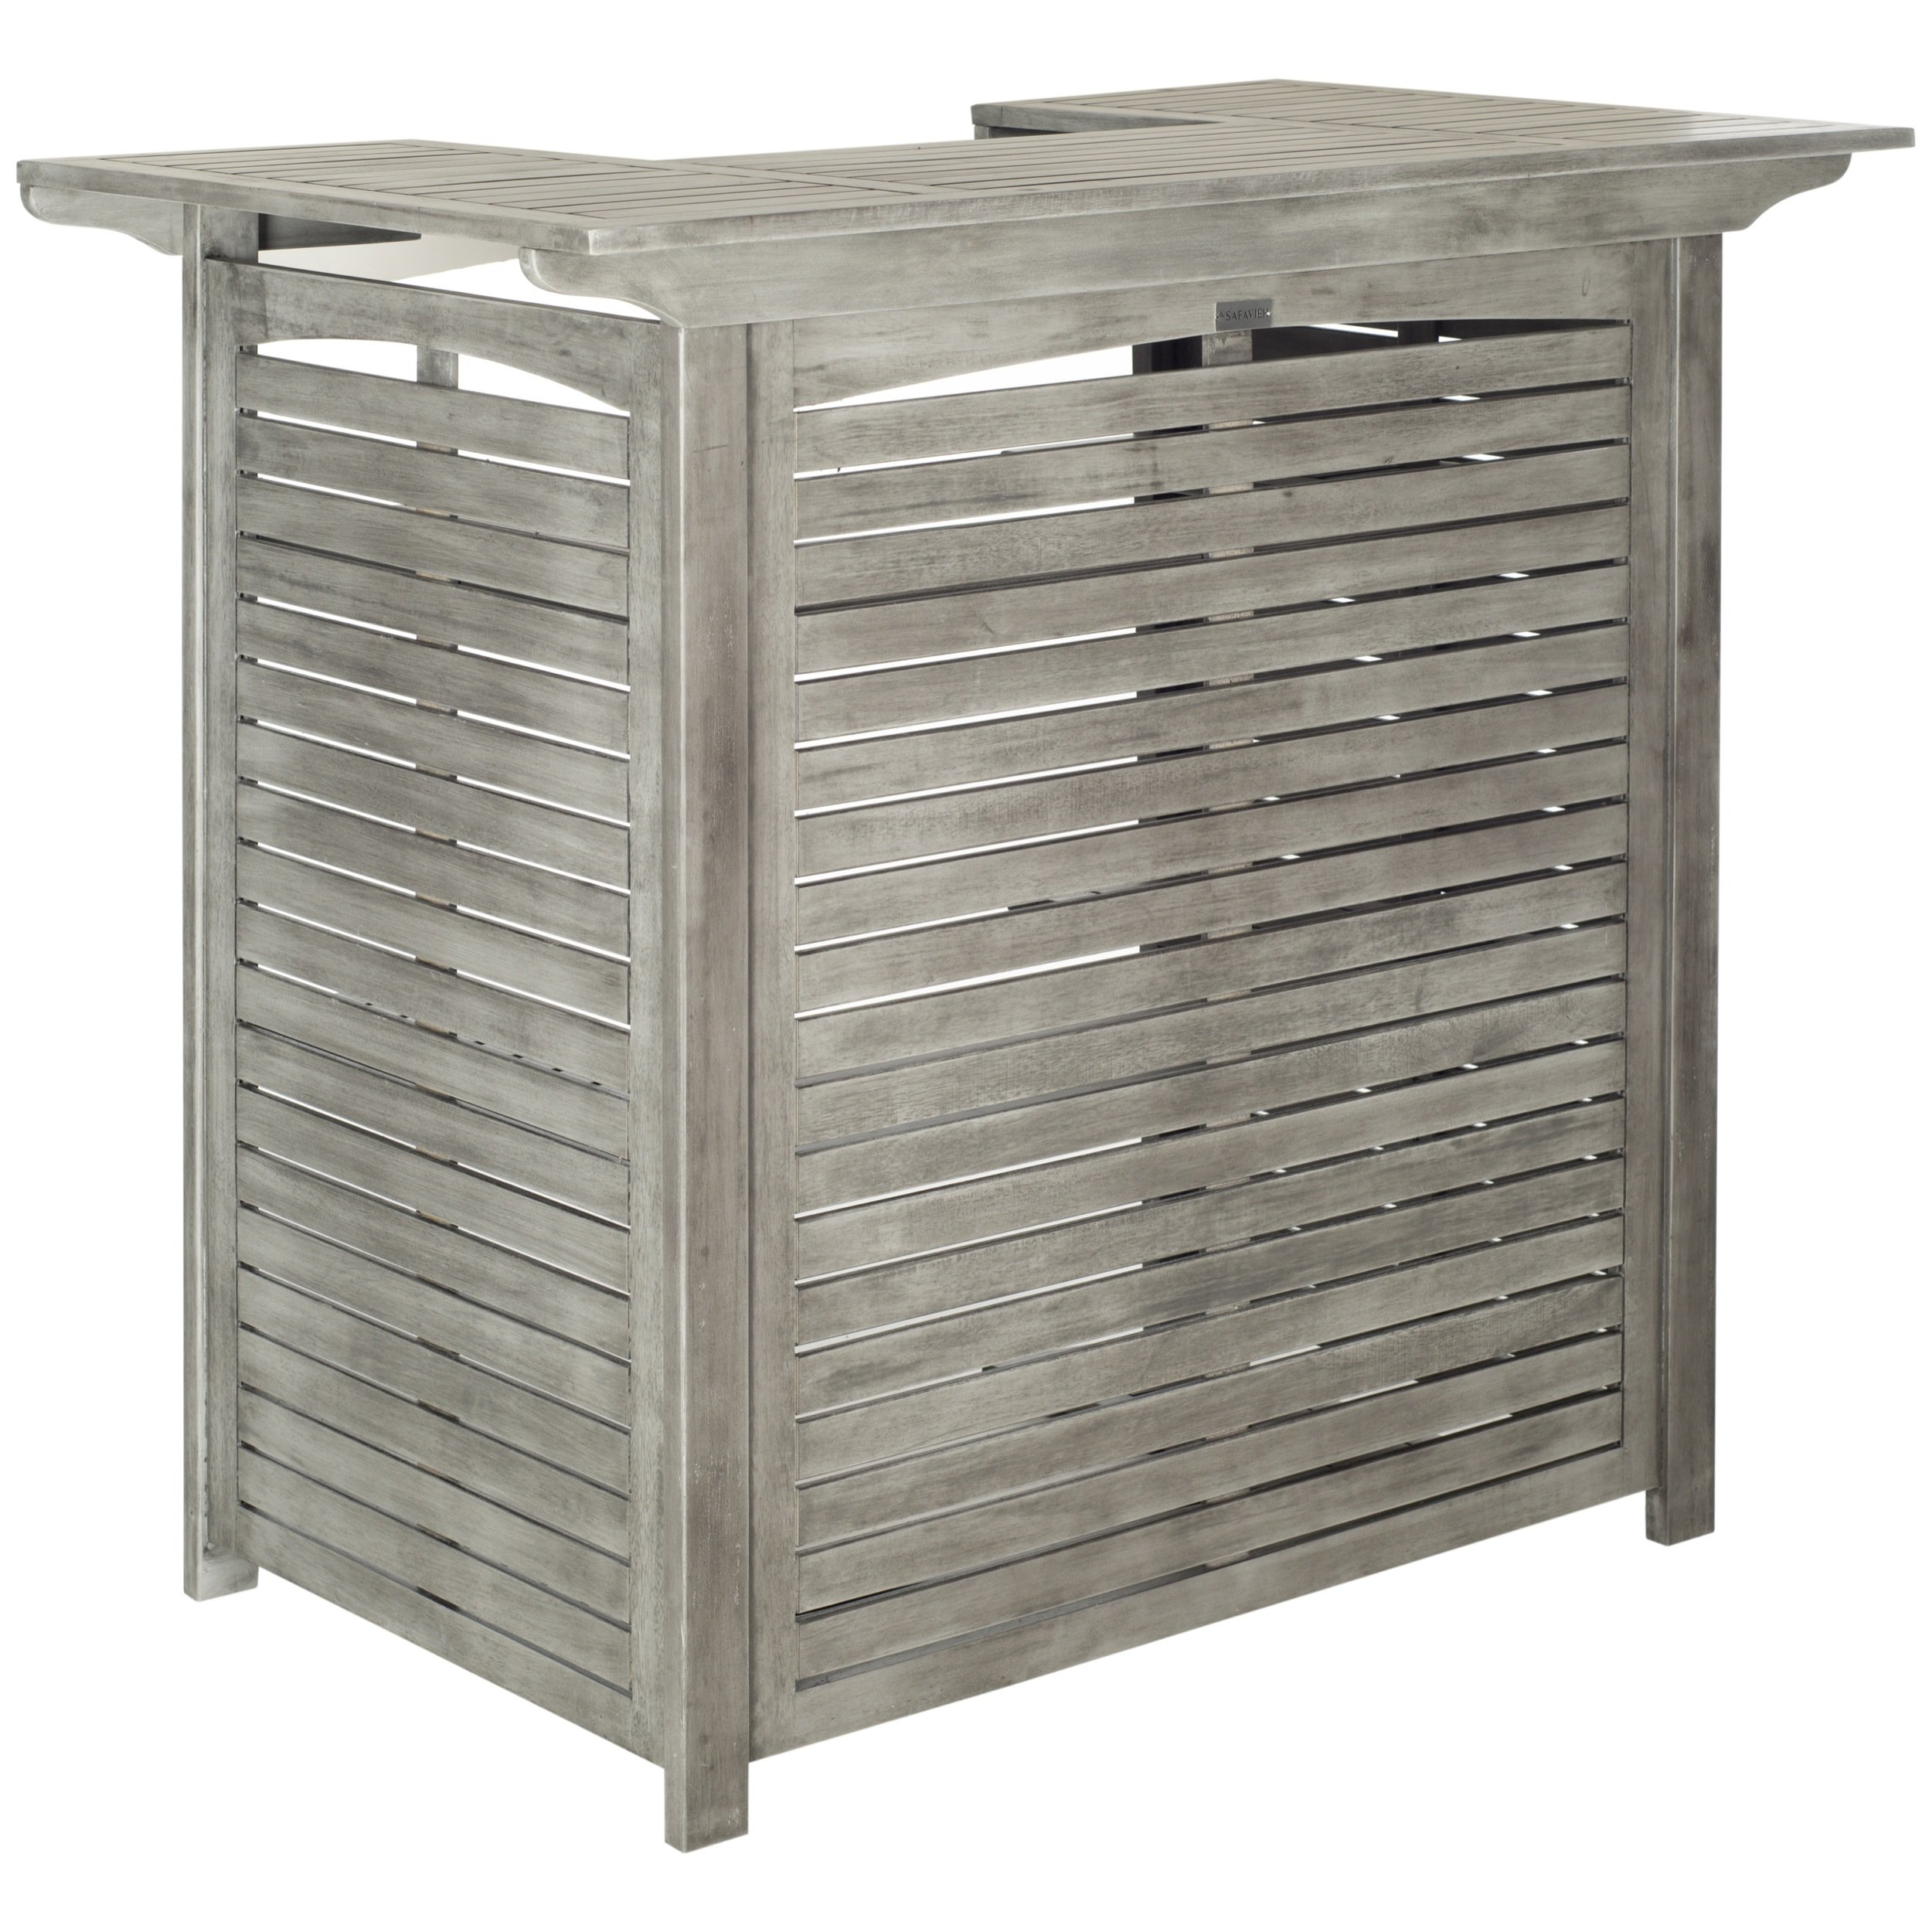 Safavieh Outdoor Living Collection Monterey Washed Bar Table, Grey